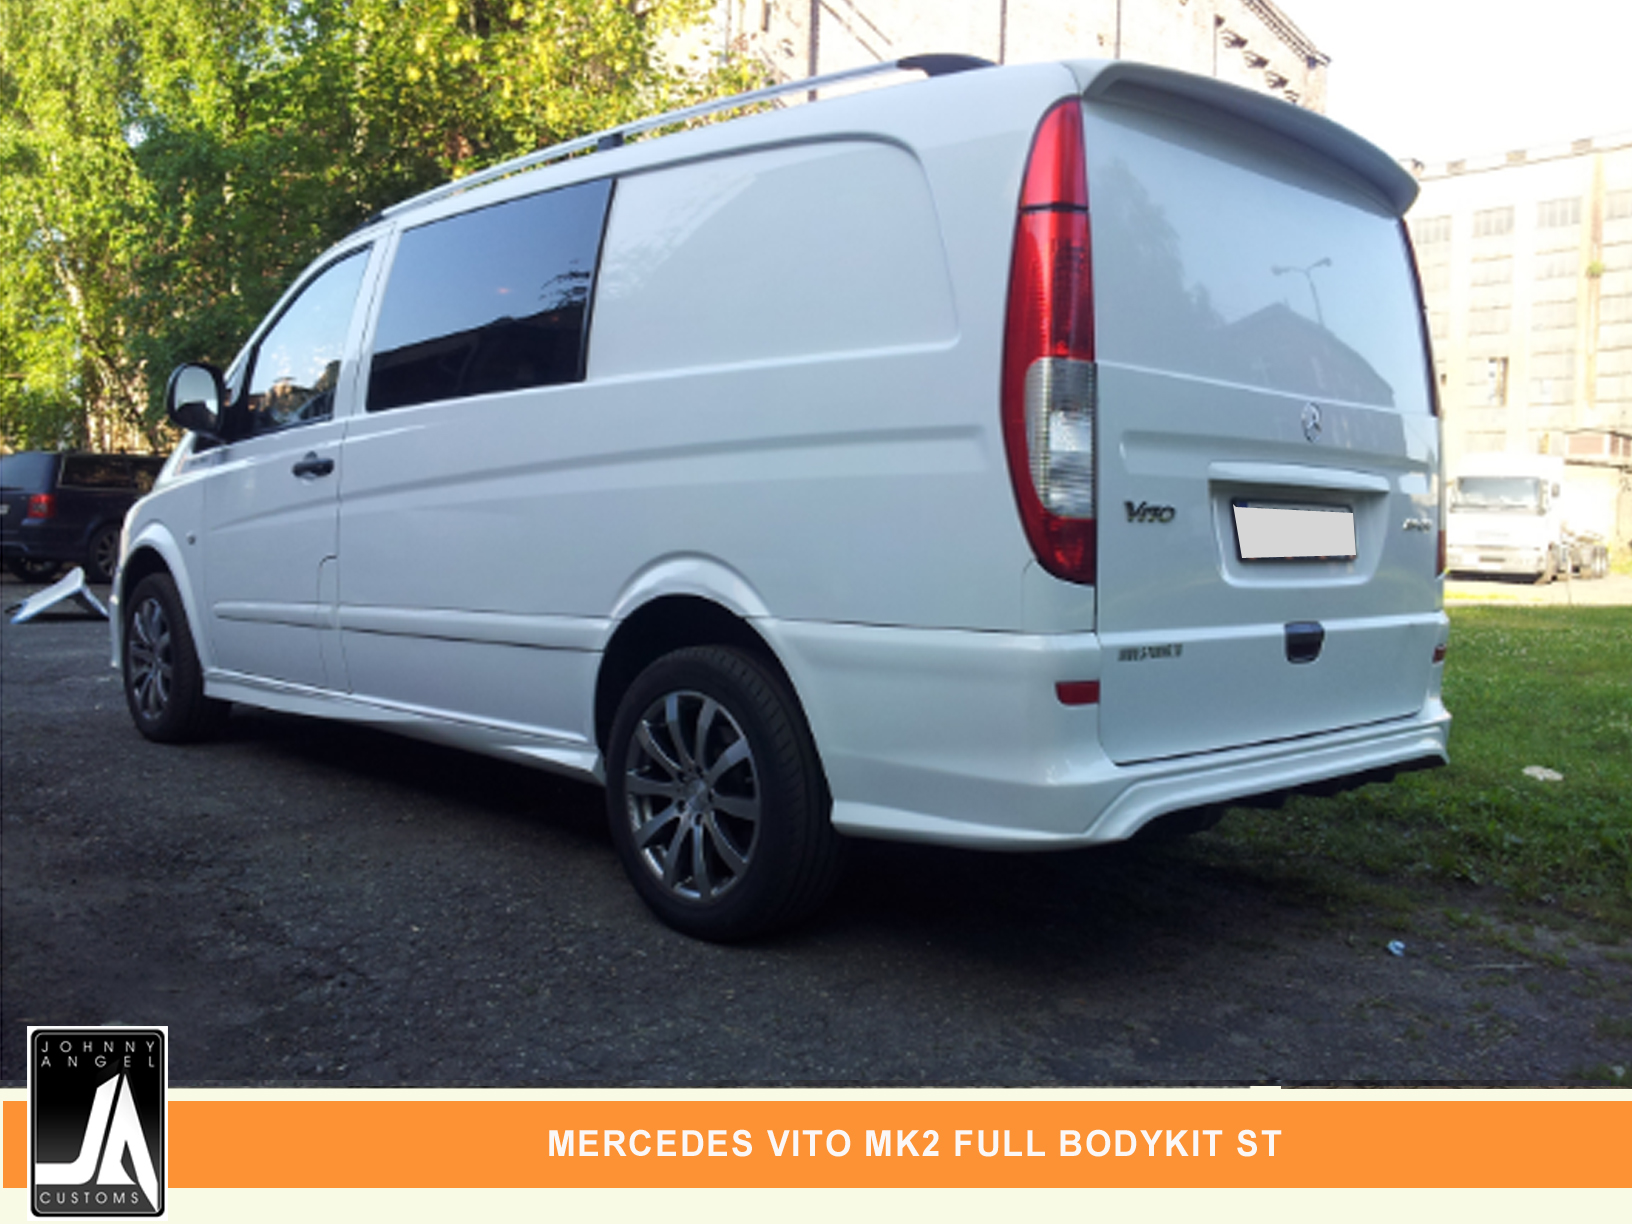 MERCEDES VITO MK2 FULL BODYKIT ST  By Johnny Angel Customs PIC 2